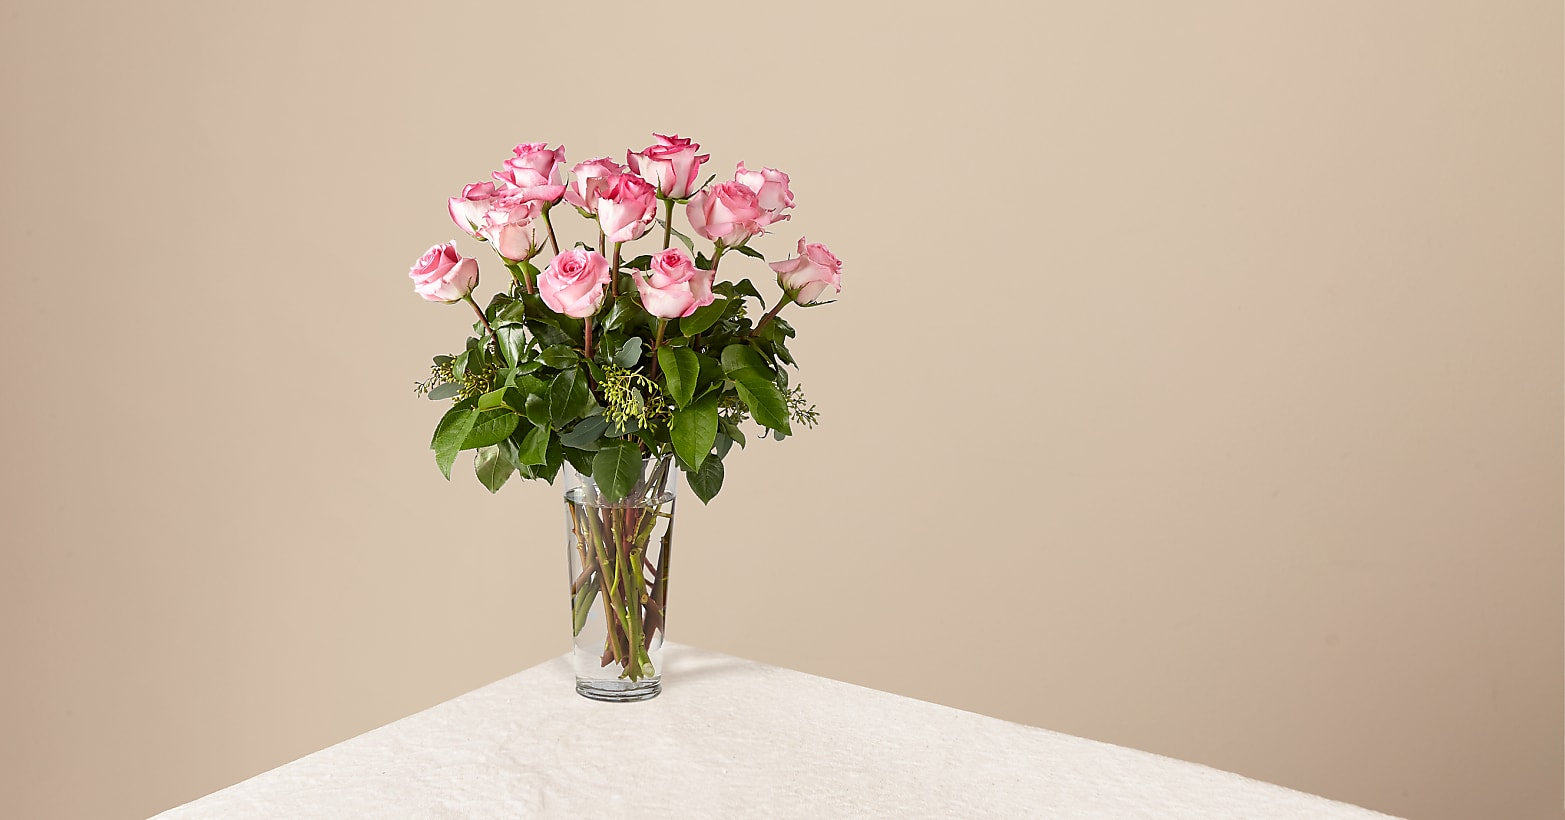 The Long Stem Pink Rose Bouquet - Image 1 Of 2